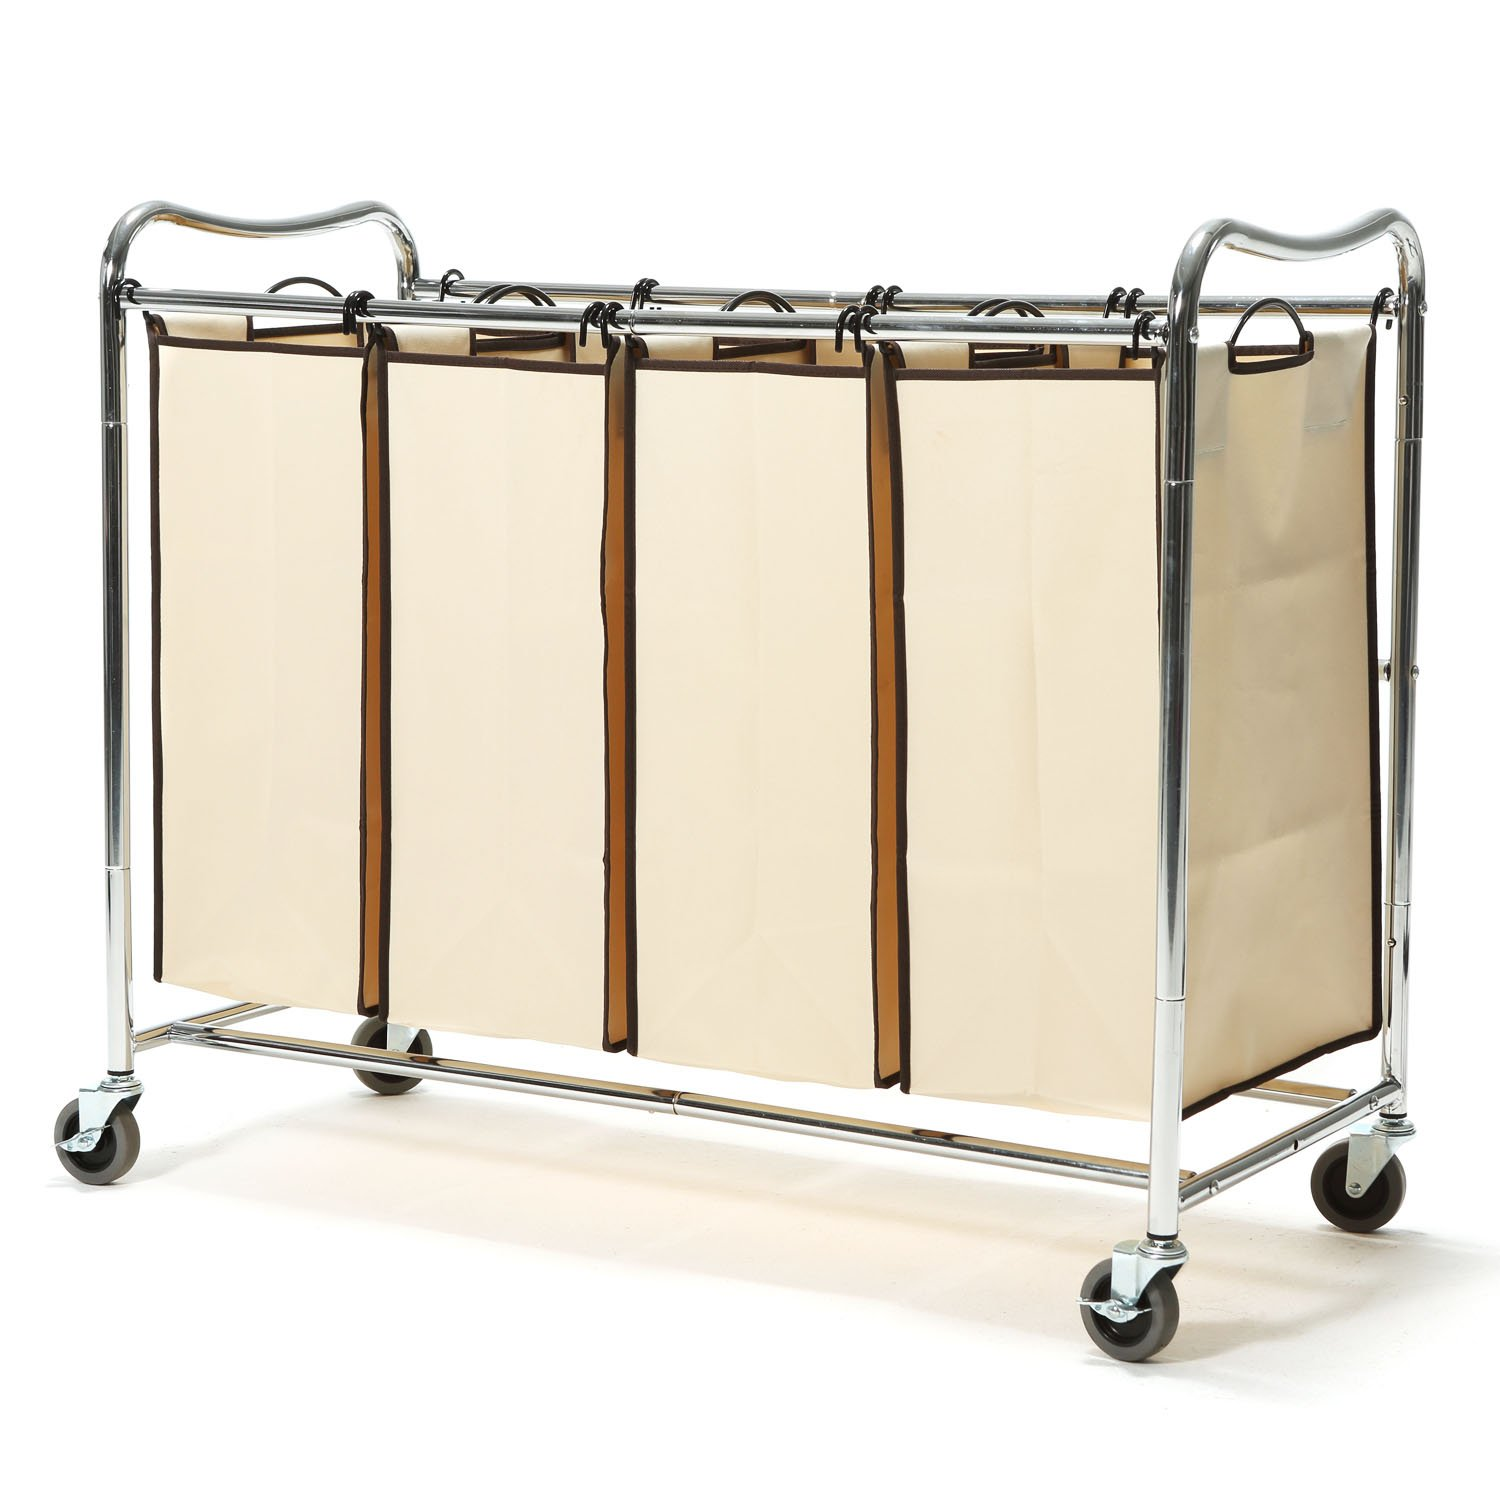 Heavy-Duty 4-Bag Rolling Laundry Sorter Storage Cart with Wheels, Chrome (HANKEY Brown)